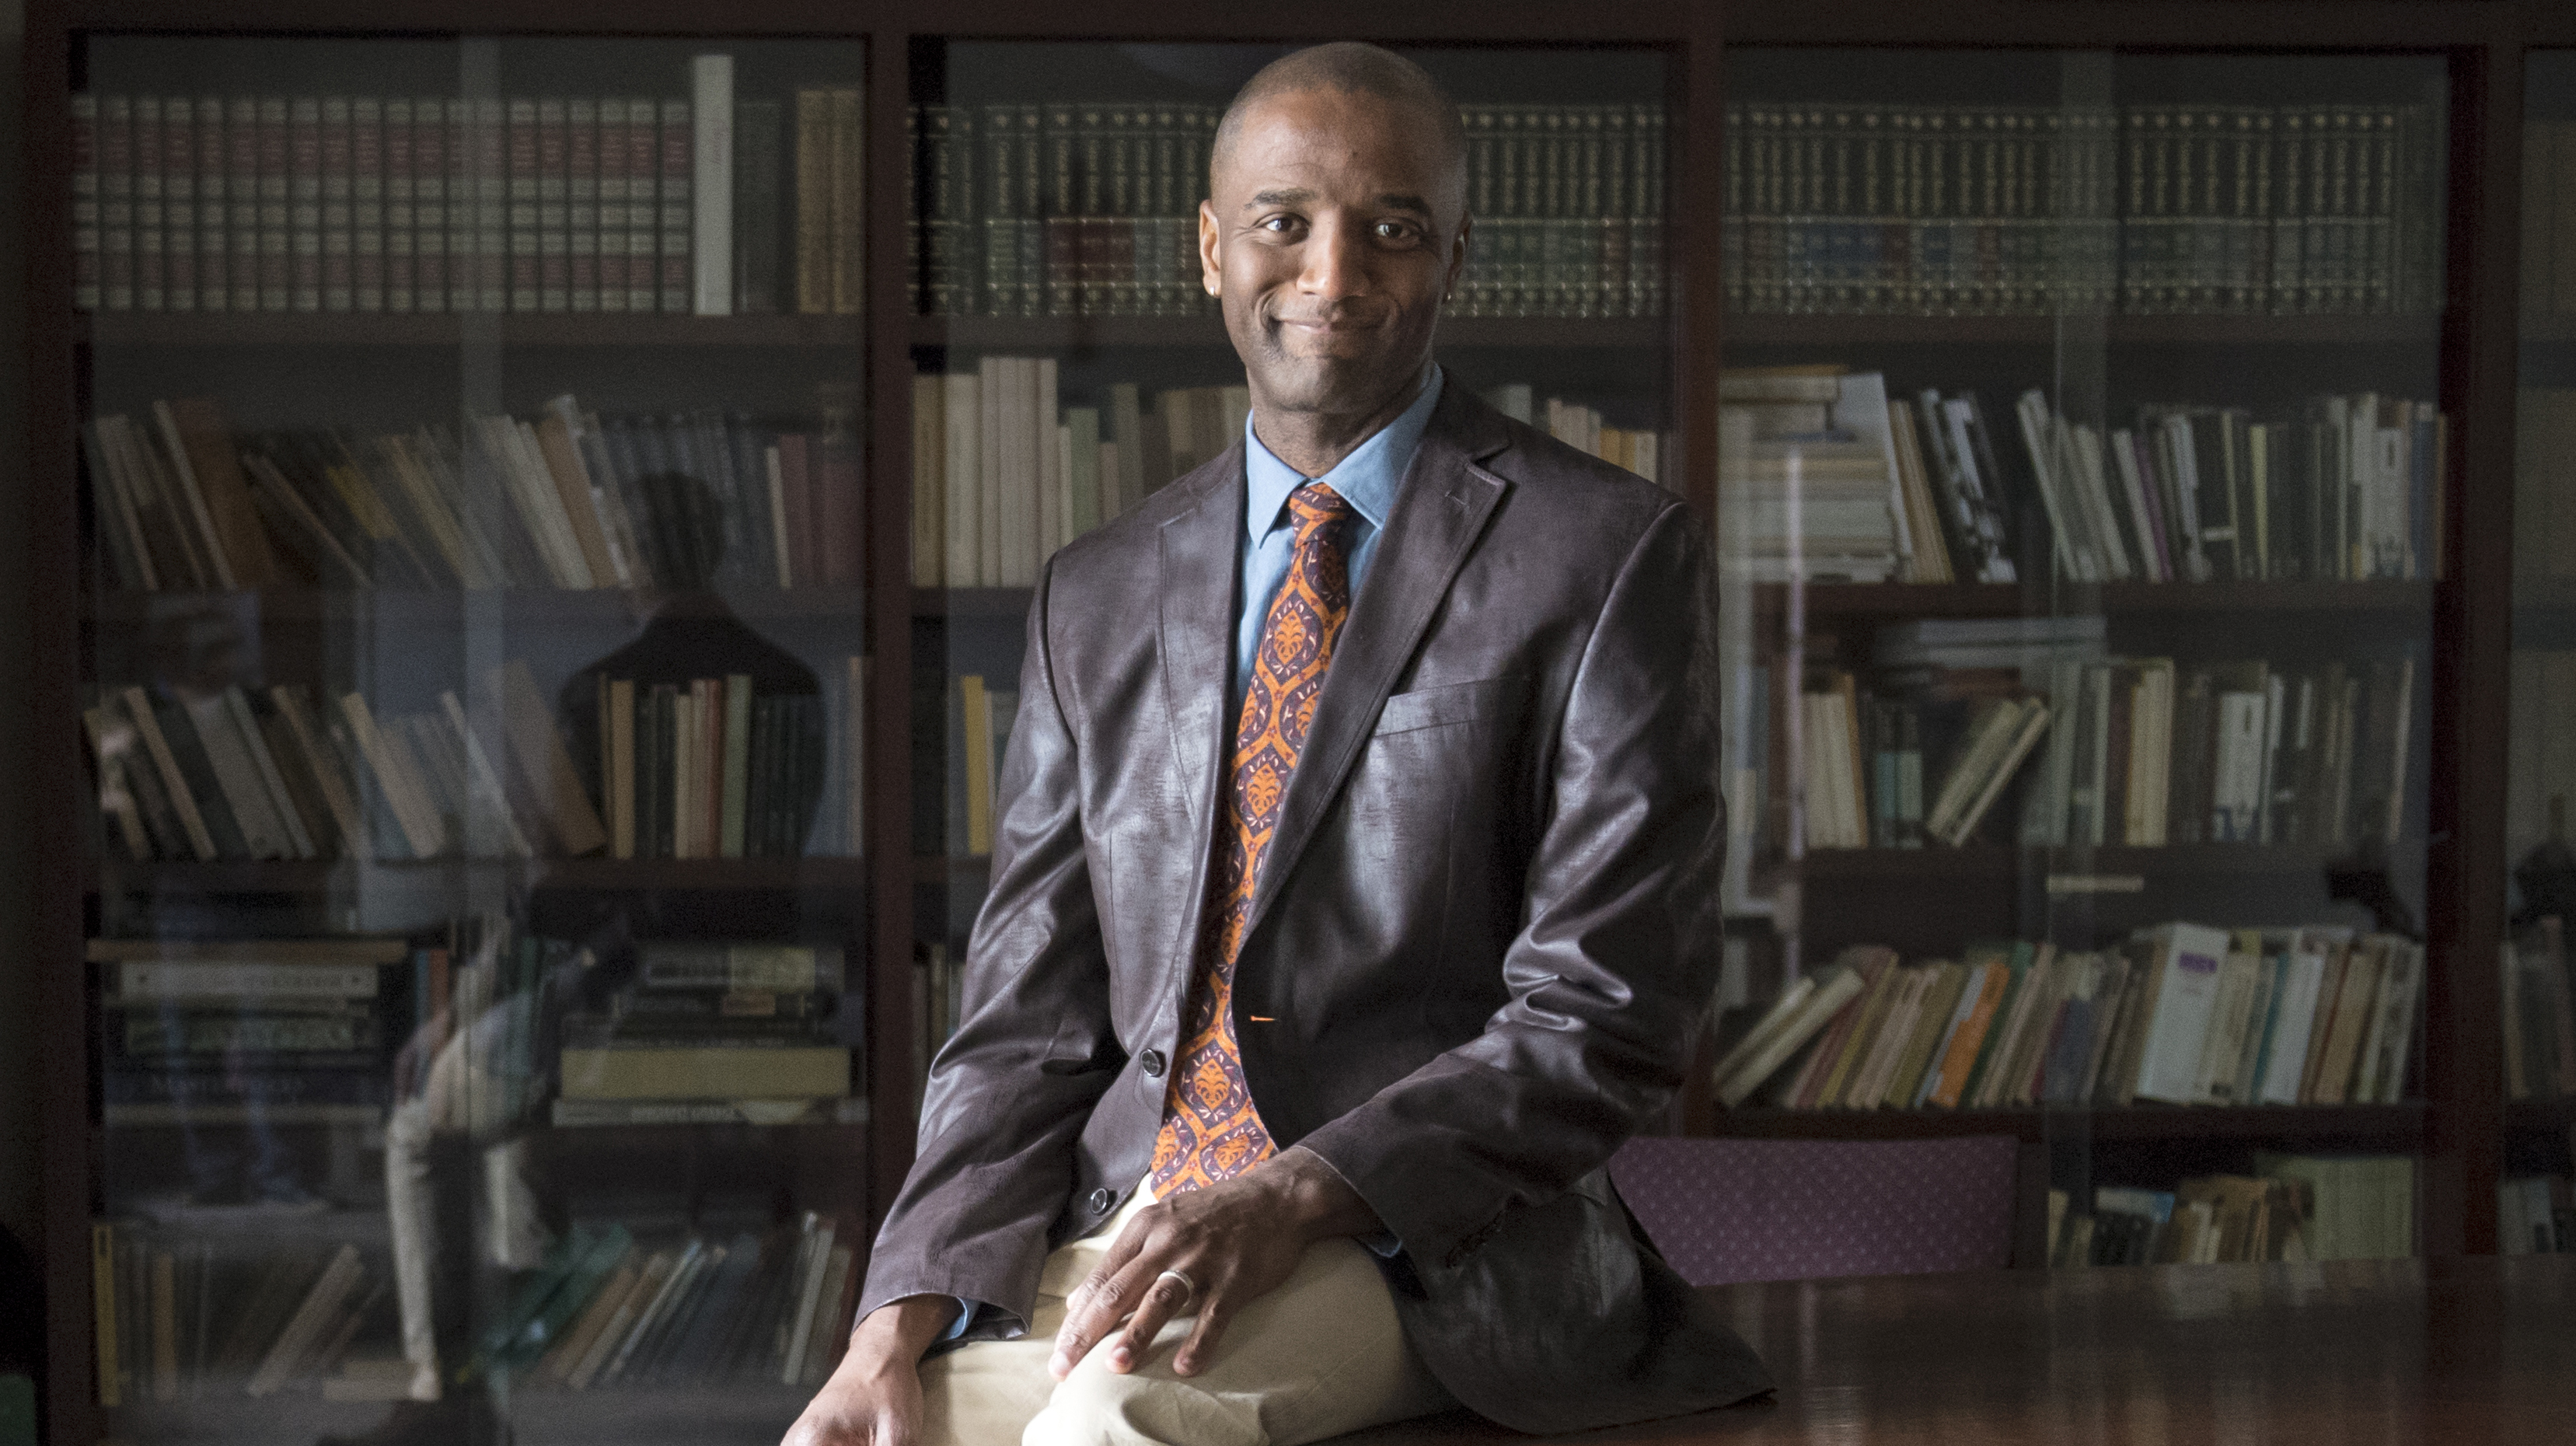 Associate Professor S. Marshall Perry sitting on desk in with books behind him.